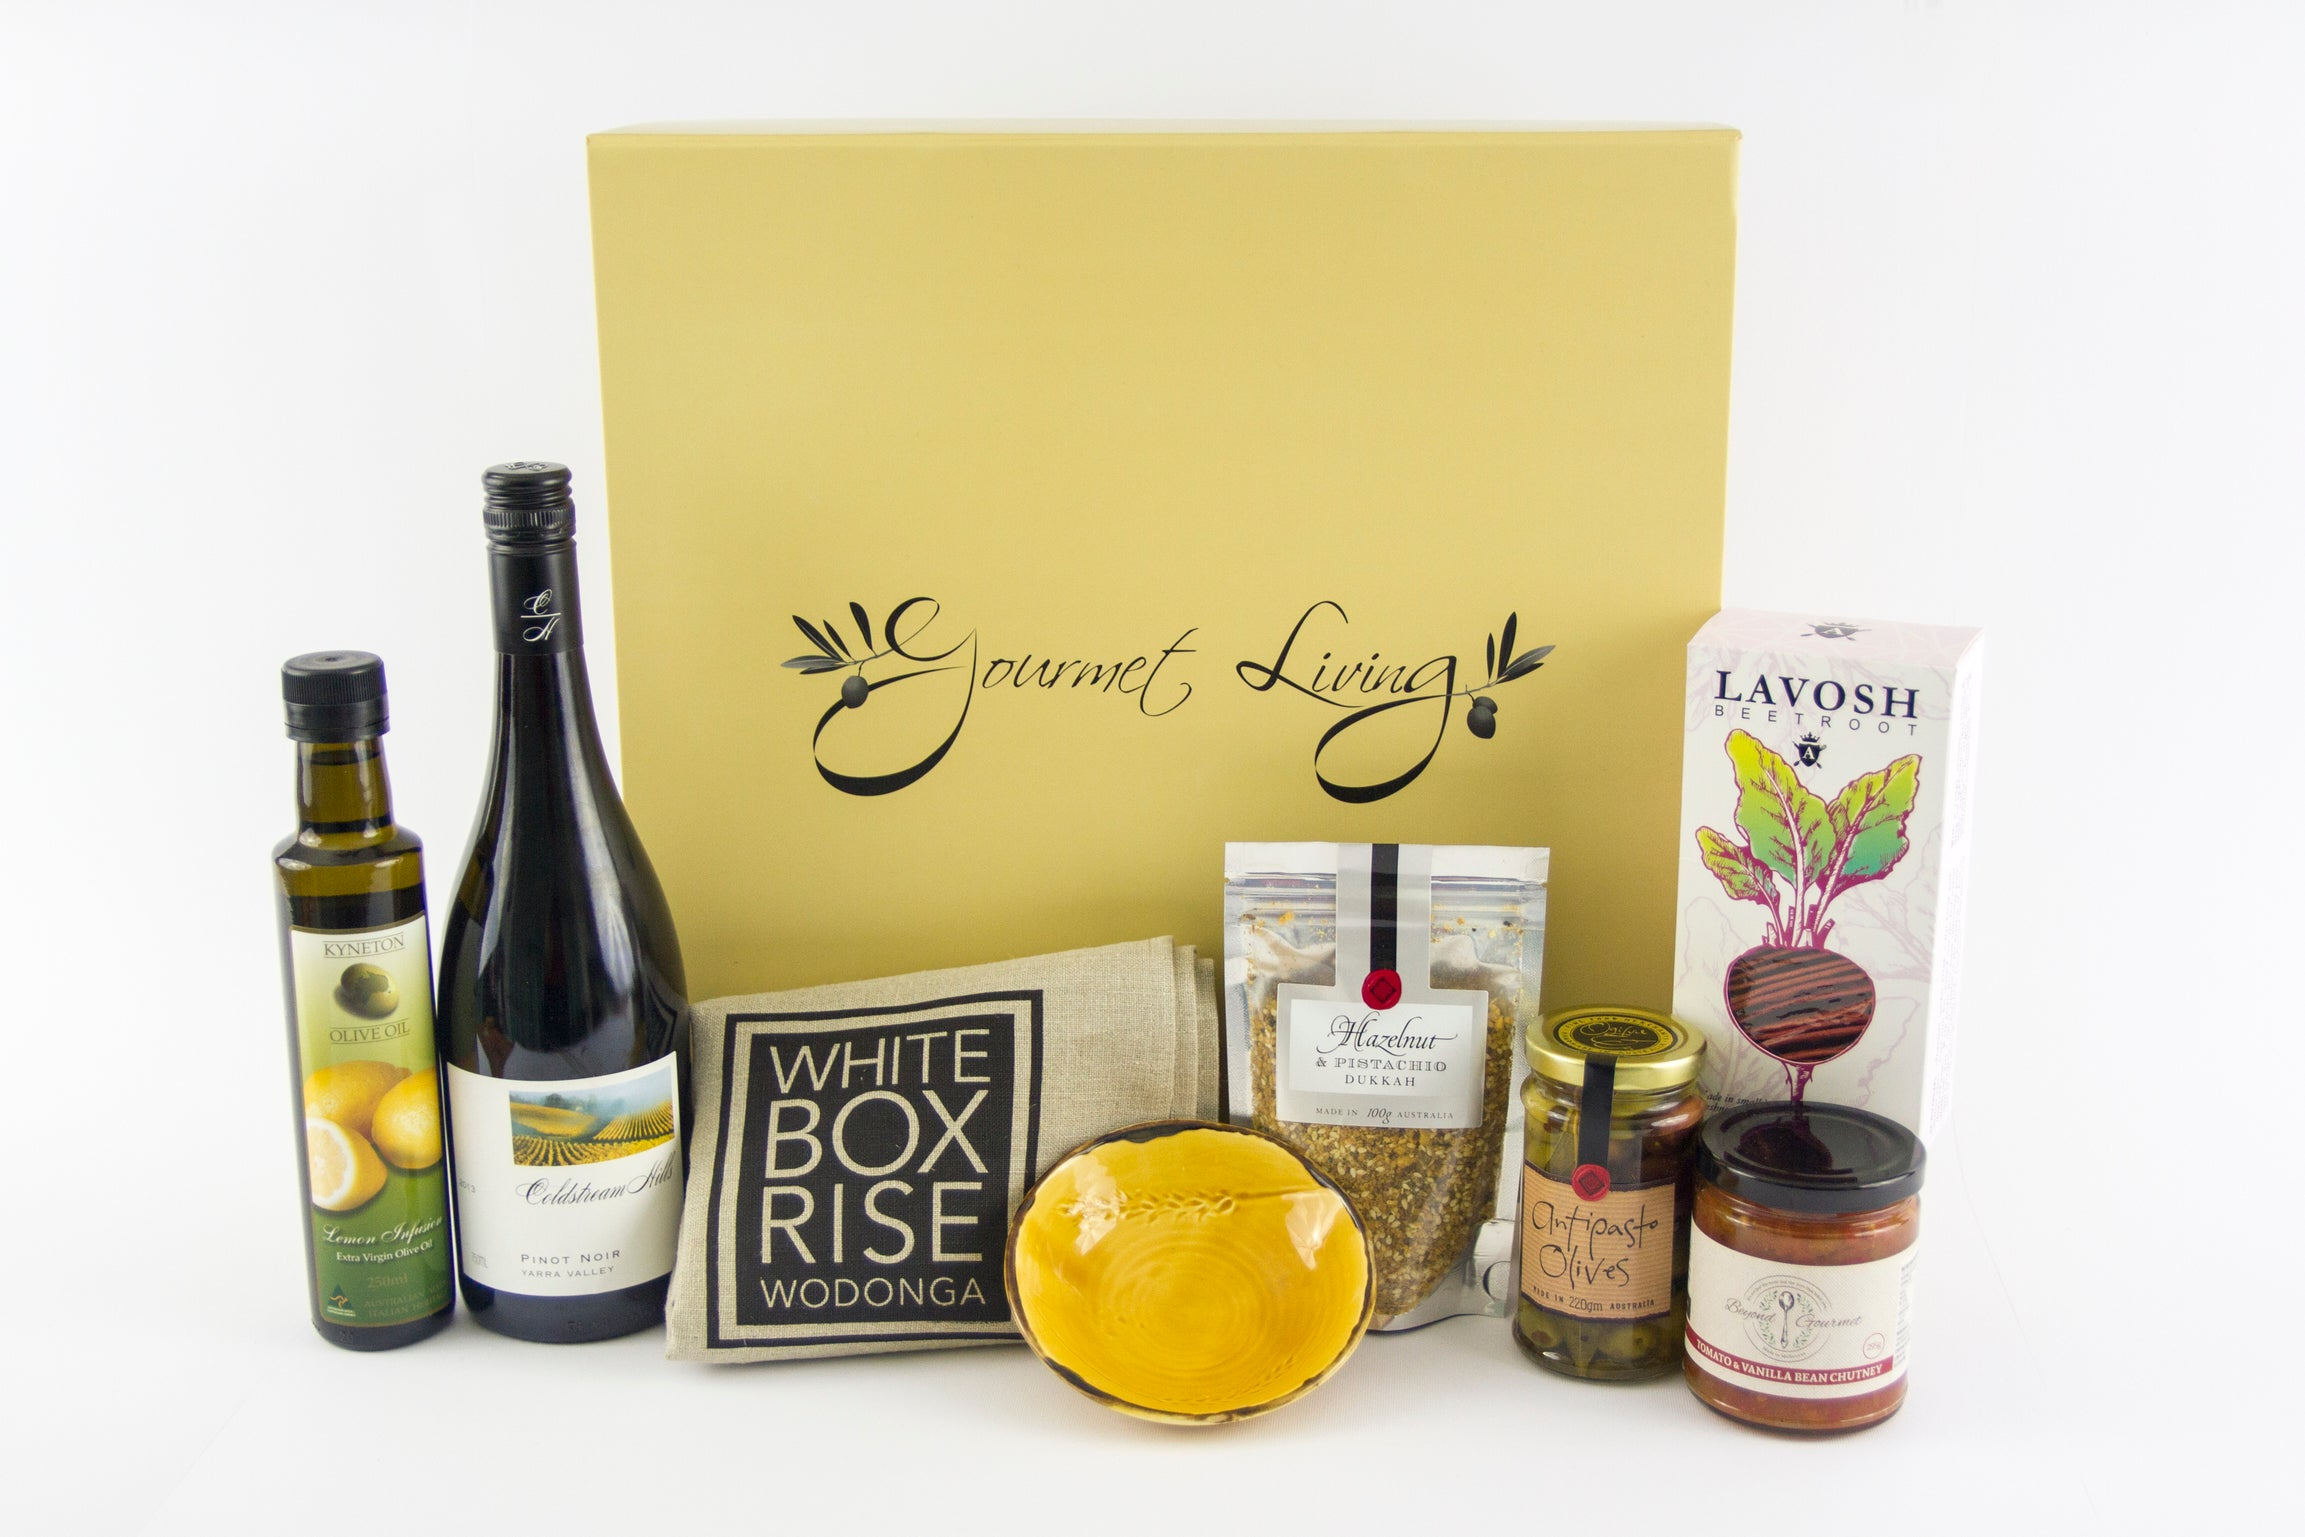 Corporate hamper gifts